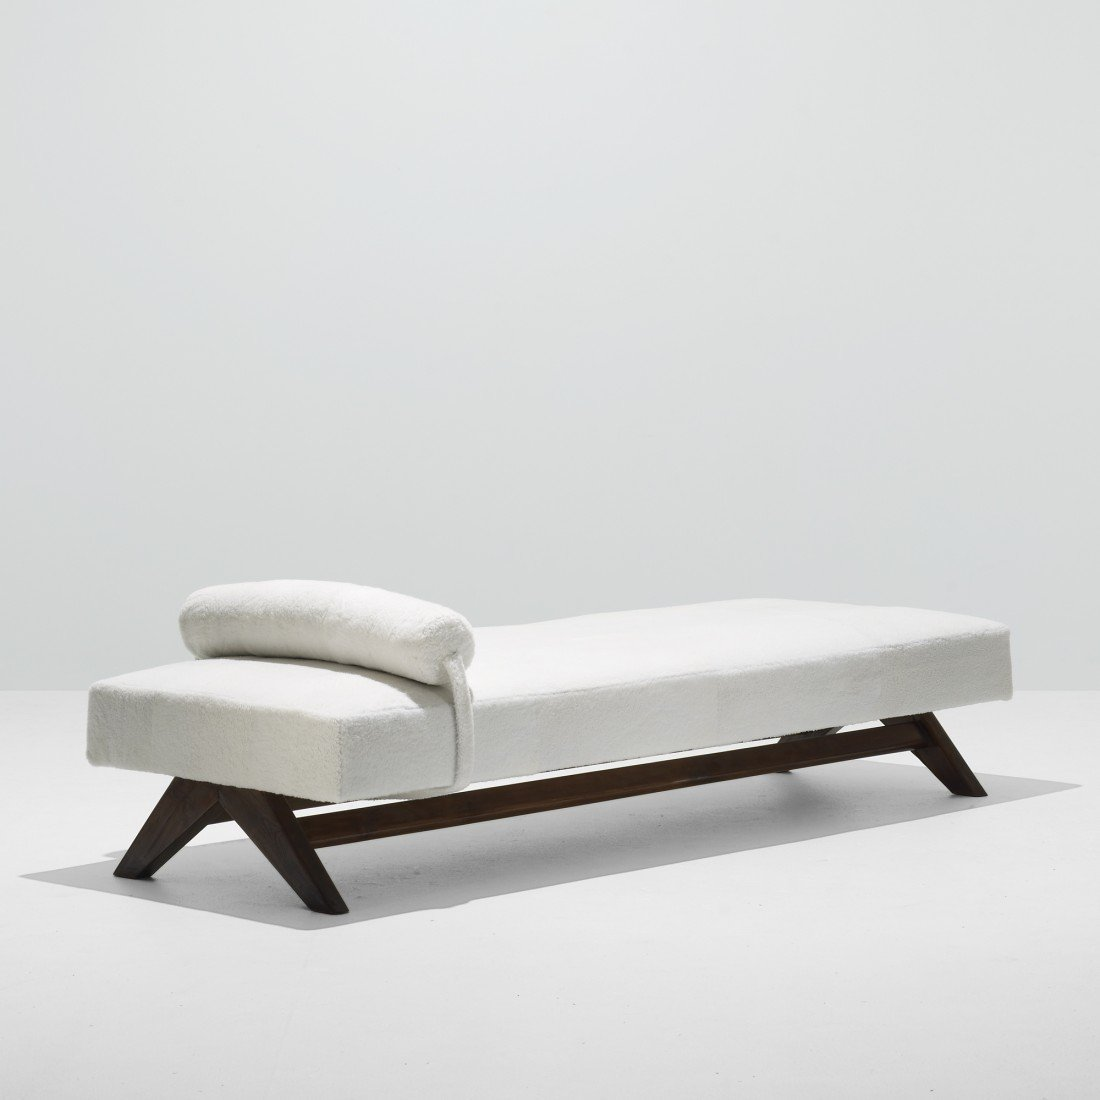 117: Pierre Jeanneret daybed